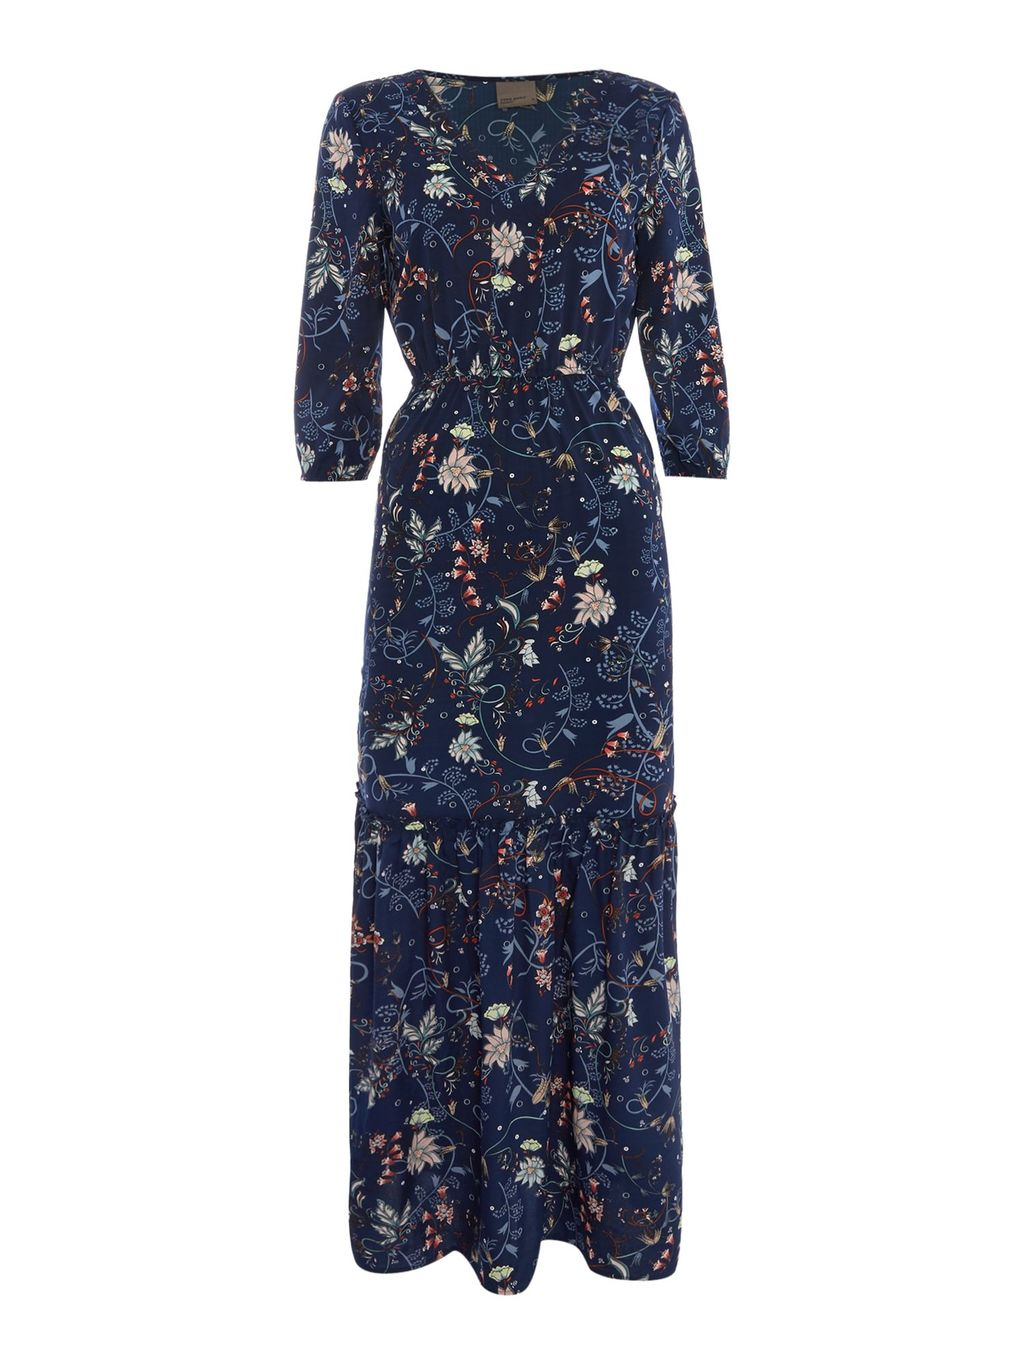 3/4 Sleeve Maxi, Navy - neckline: v-neck; style: maxi dress; length: ankle length; secondary colour: ivory/cream; predominant colour: navy; occasions: casual, holiday; fit: body skimming; fibres: polyester/polyamide - 100%; sleeve length: 3/4 length; sleeve style: standard; pattern type: fabric; pattern size: standard; pattern: florals; texture group: woven light midweight; season: a/w 2016; wardrobe: highlight